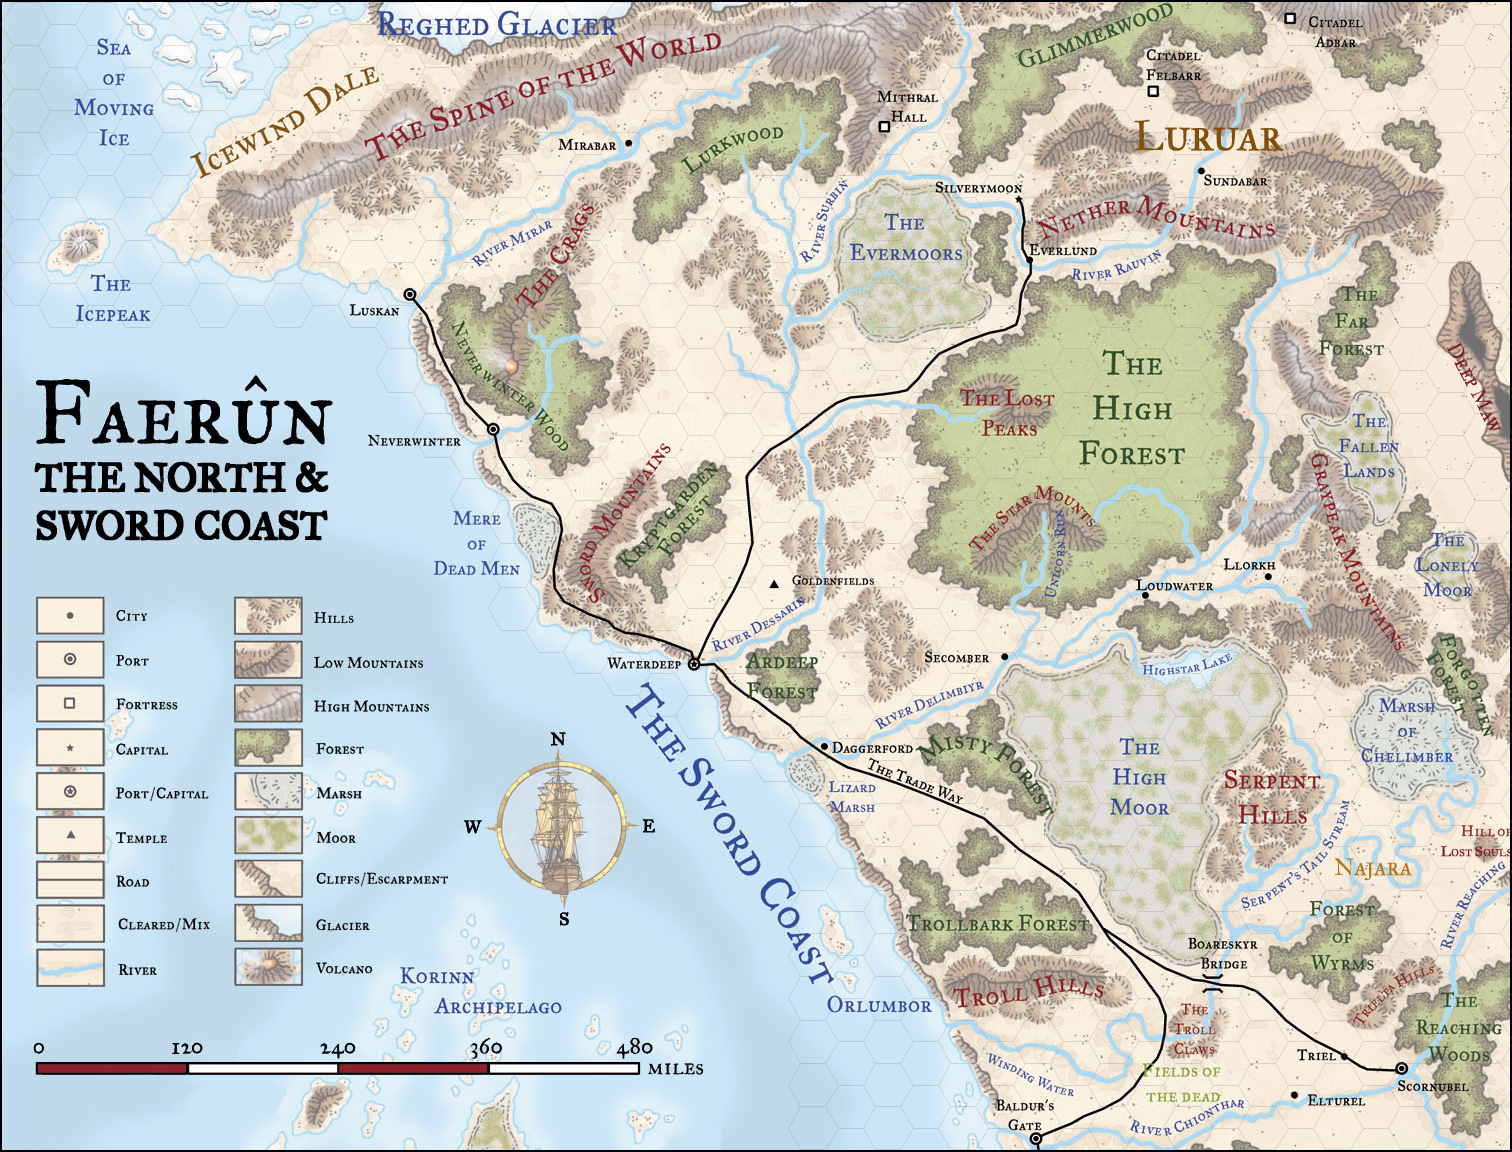 Faerun_North___Sword_Coast.jpg